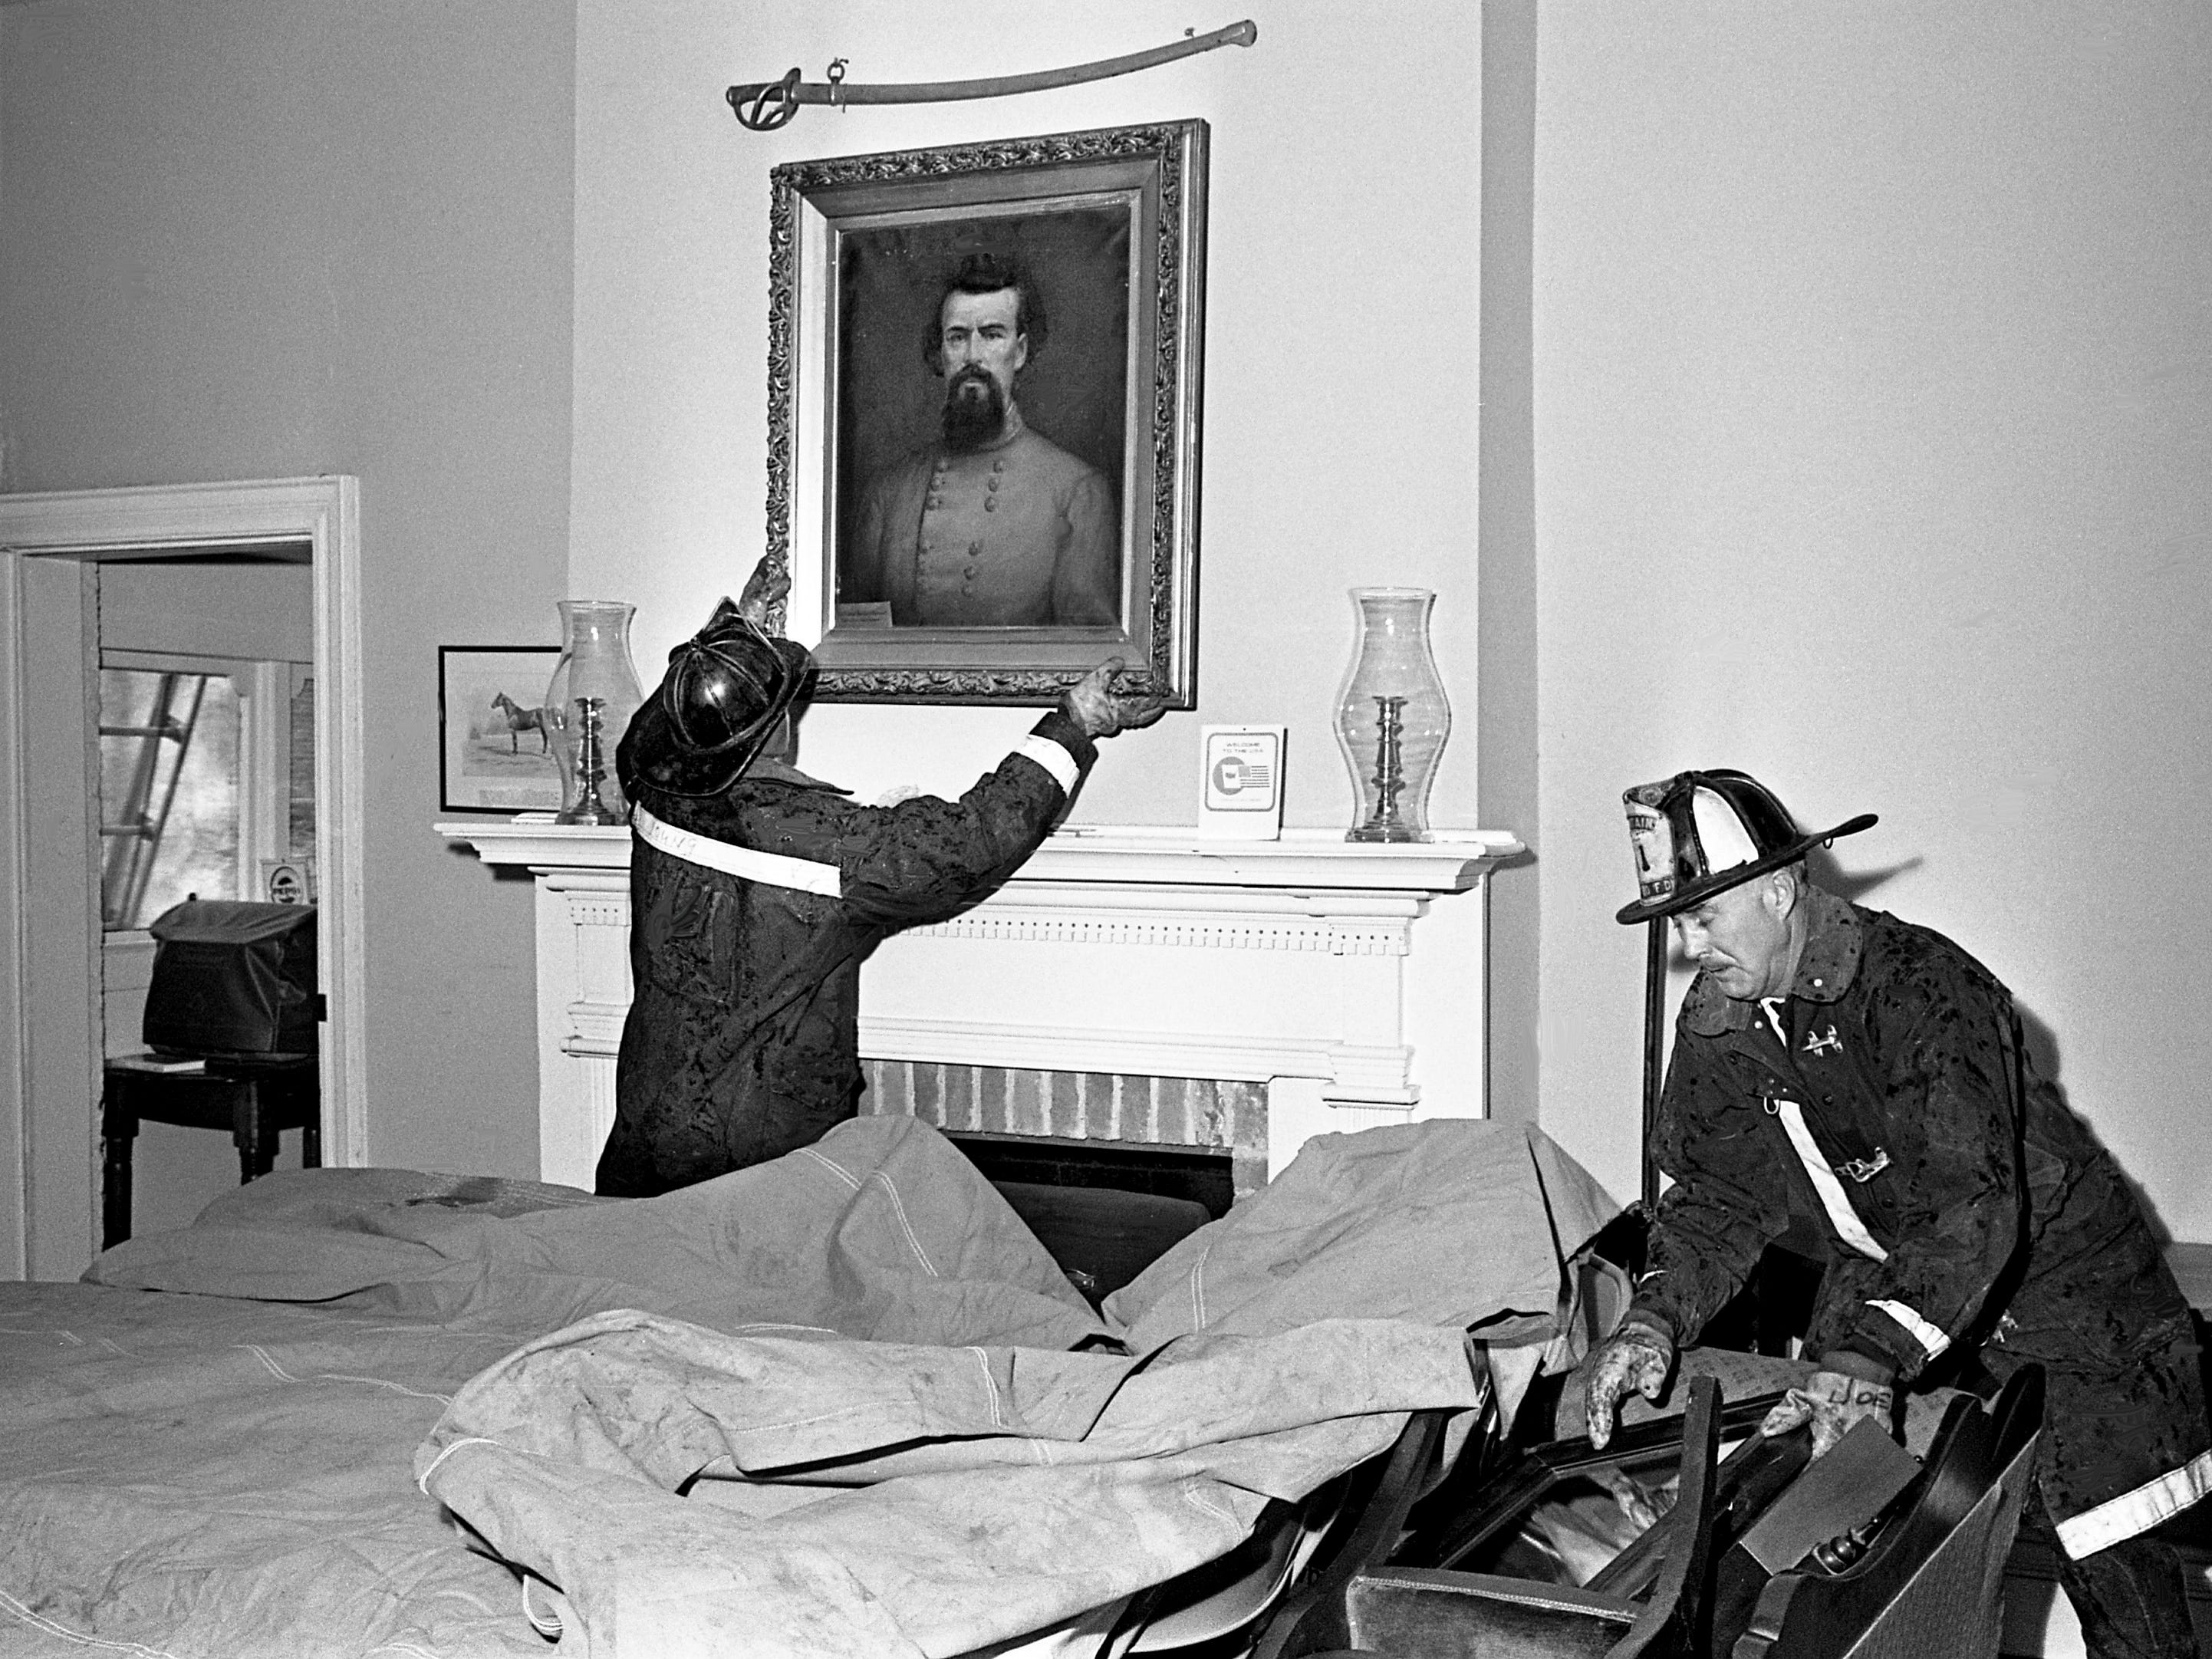 A firefighter removes a painting of Confederate Gen. Nathan Bedford Forrest from the wall to protect it from smoke and water damage as another starts cleanup operations after putting out an attic fire at the historic Travellers' Rest on Jan. 4, 1969.